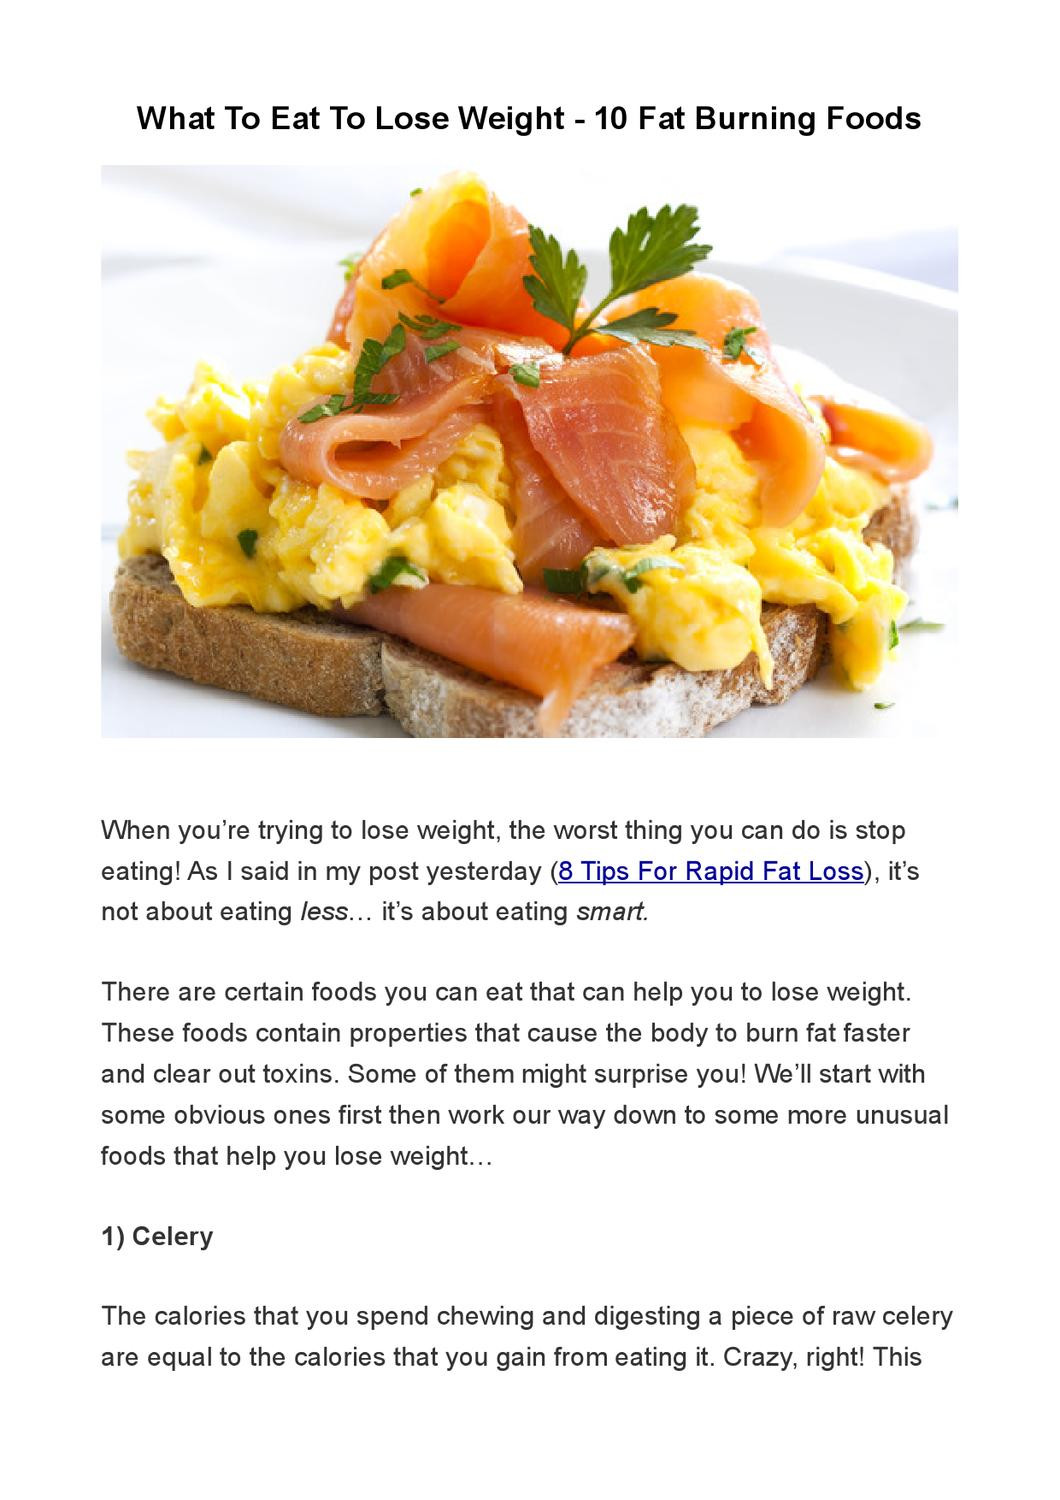 Fat Burning Foods Losing Weight 10 Pounds  What To Eat To Lose Weight 10 Fat Burning Foods by